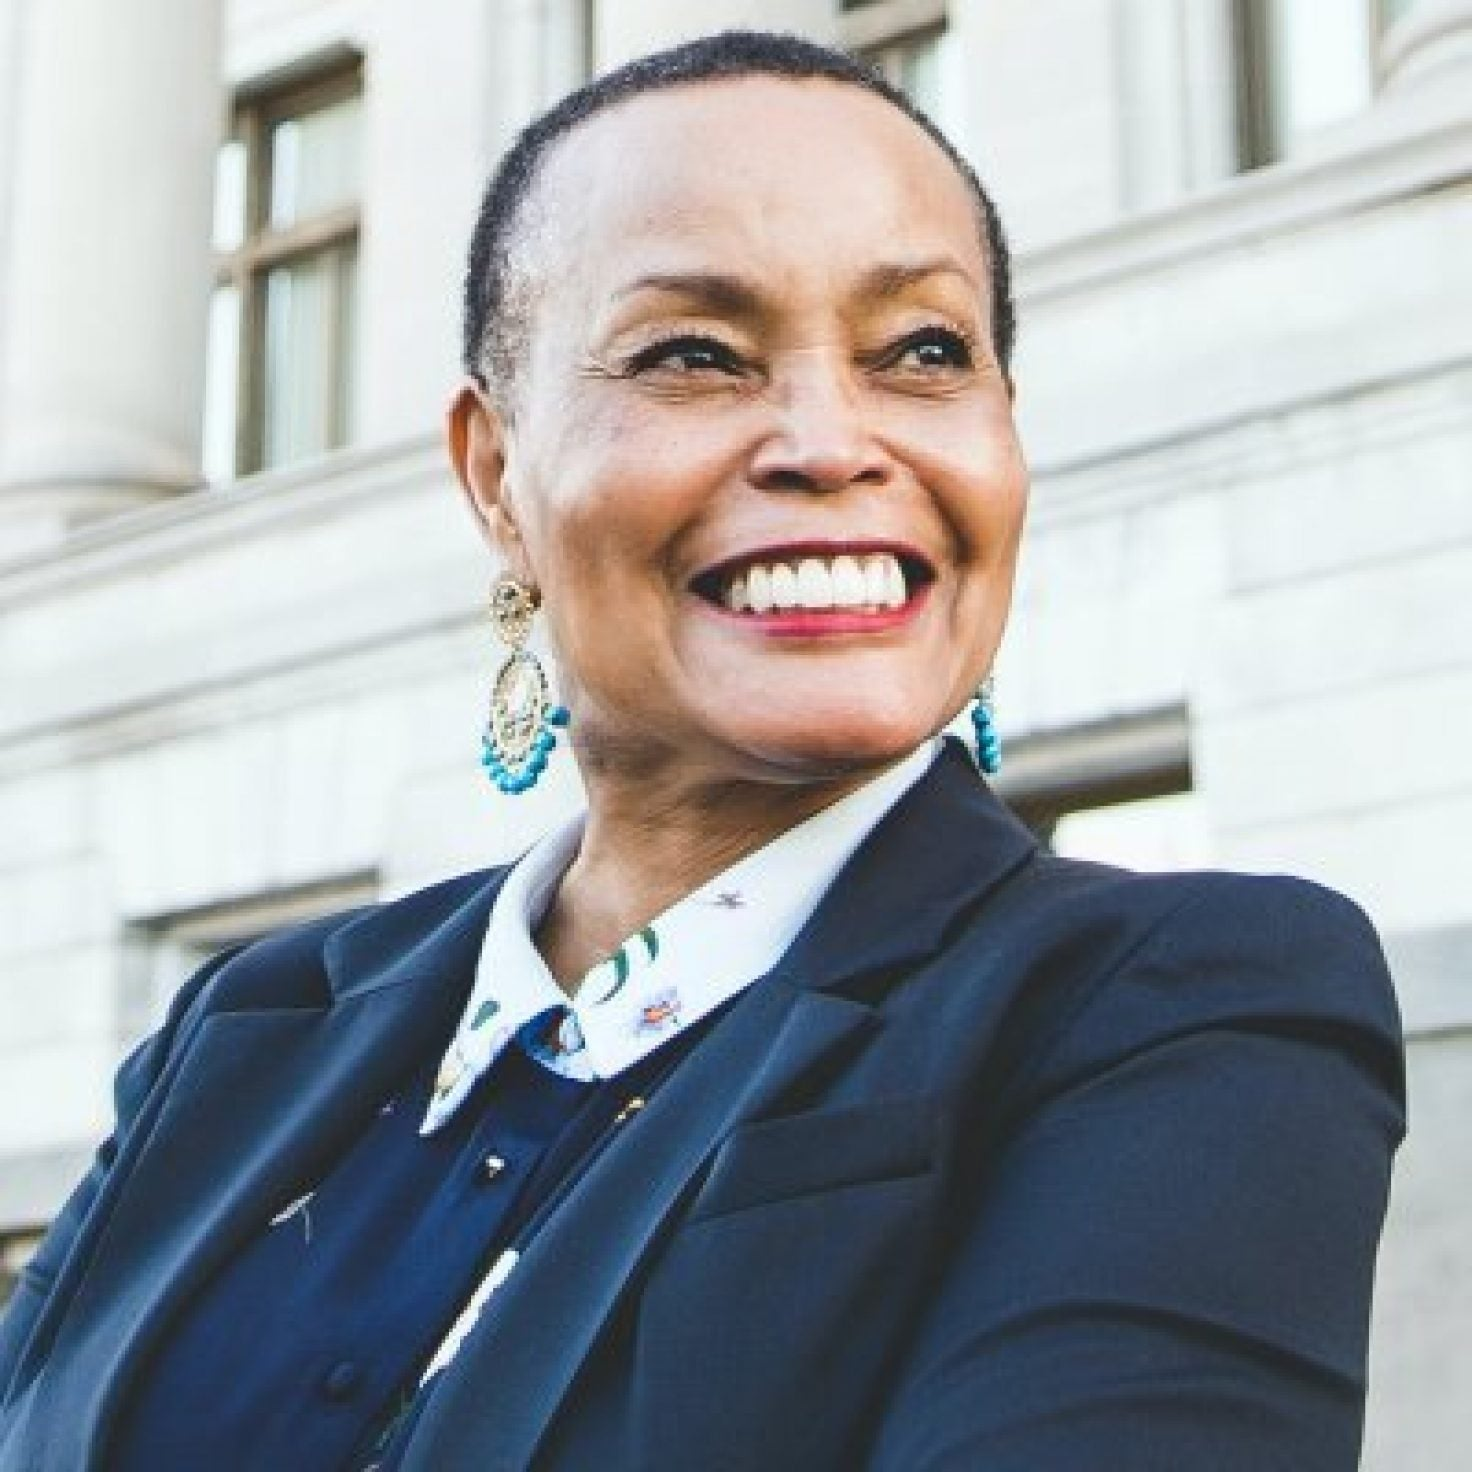 Joyce Elliott: 'I Was Denied Opportunity In School. I'm Running For Congress To Advocate For All'